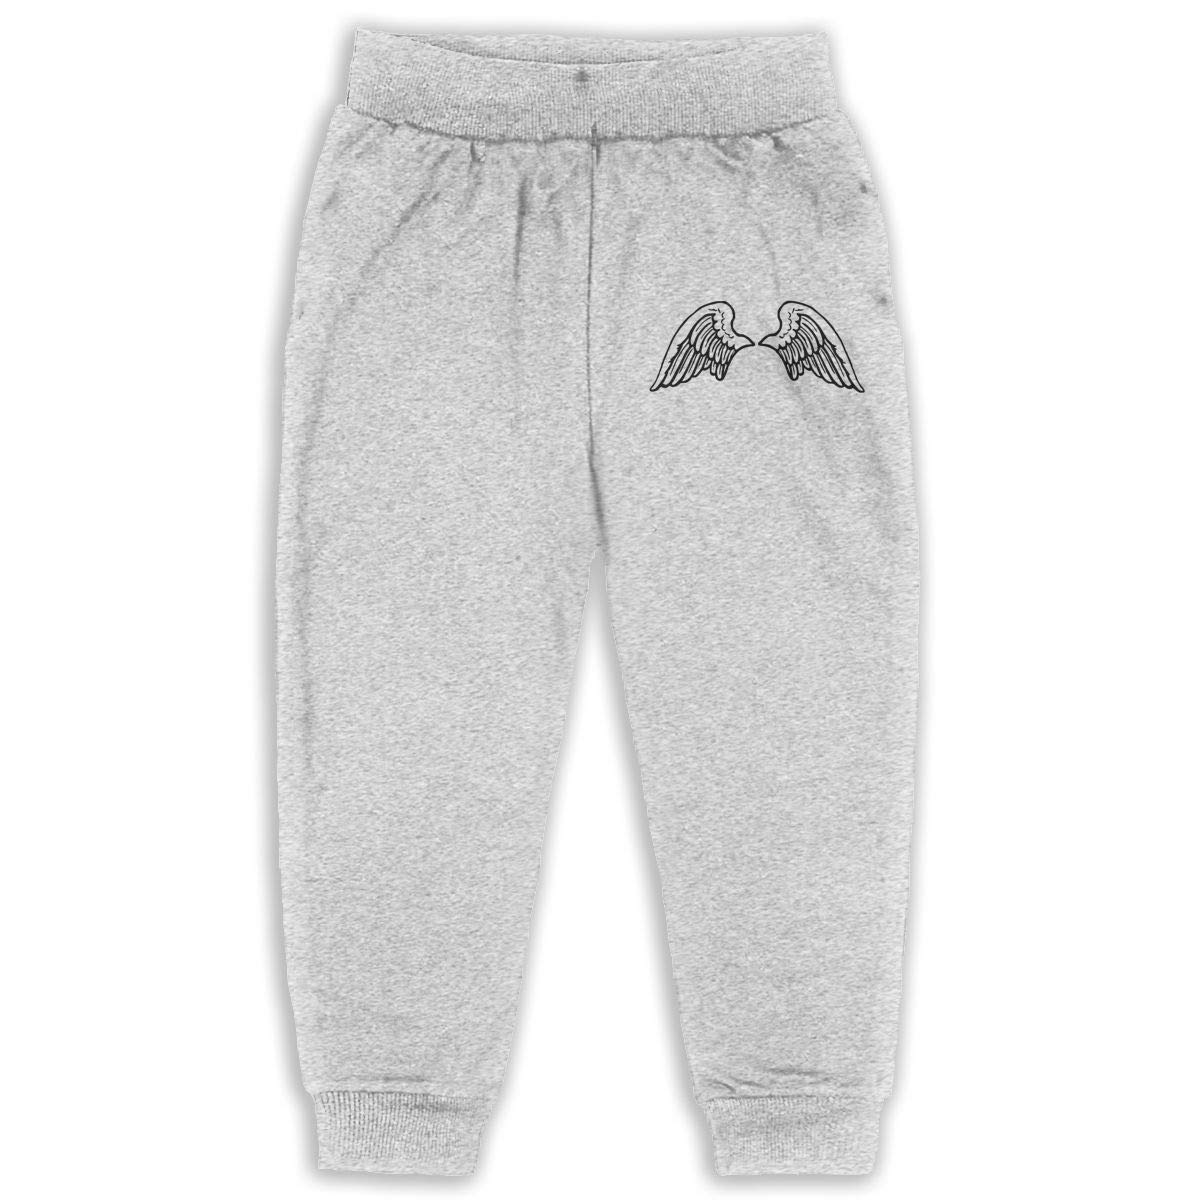 Fleece Active Joggers Elastic Pants DaXi1 Wings Sweatpants for Boys /& Girls